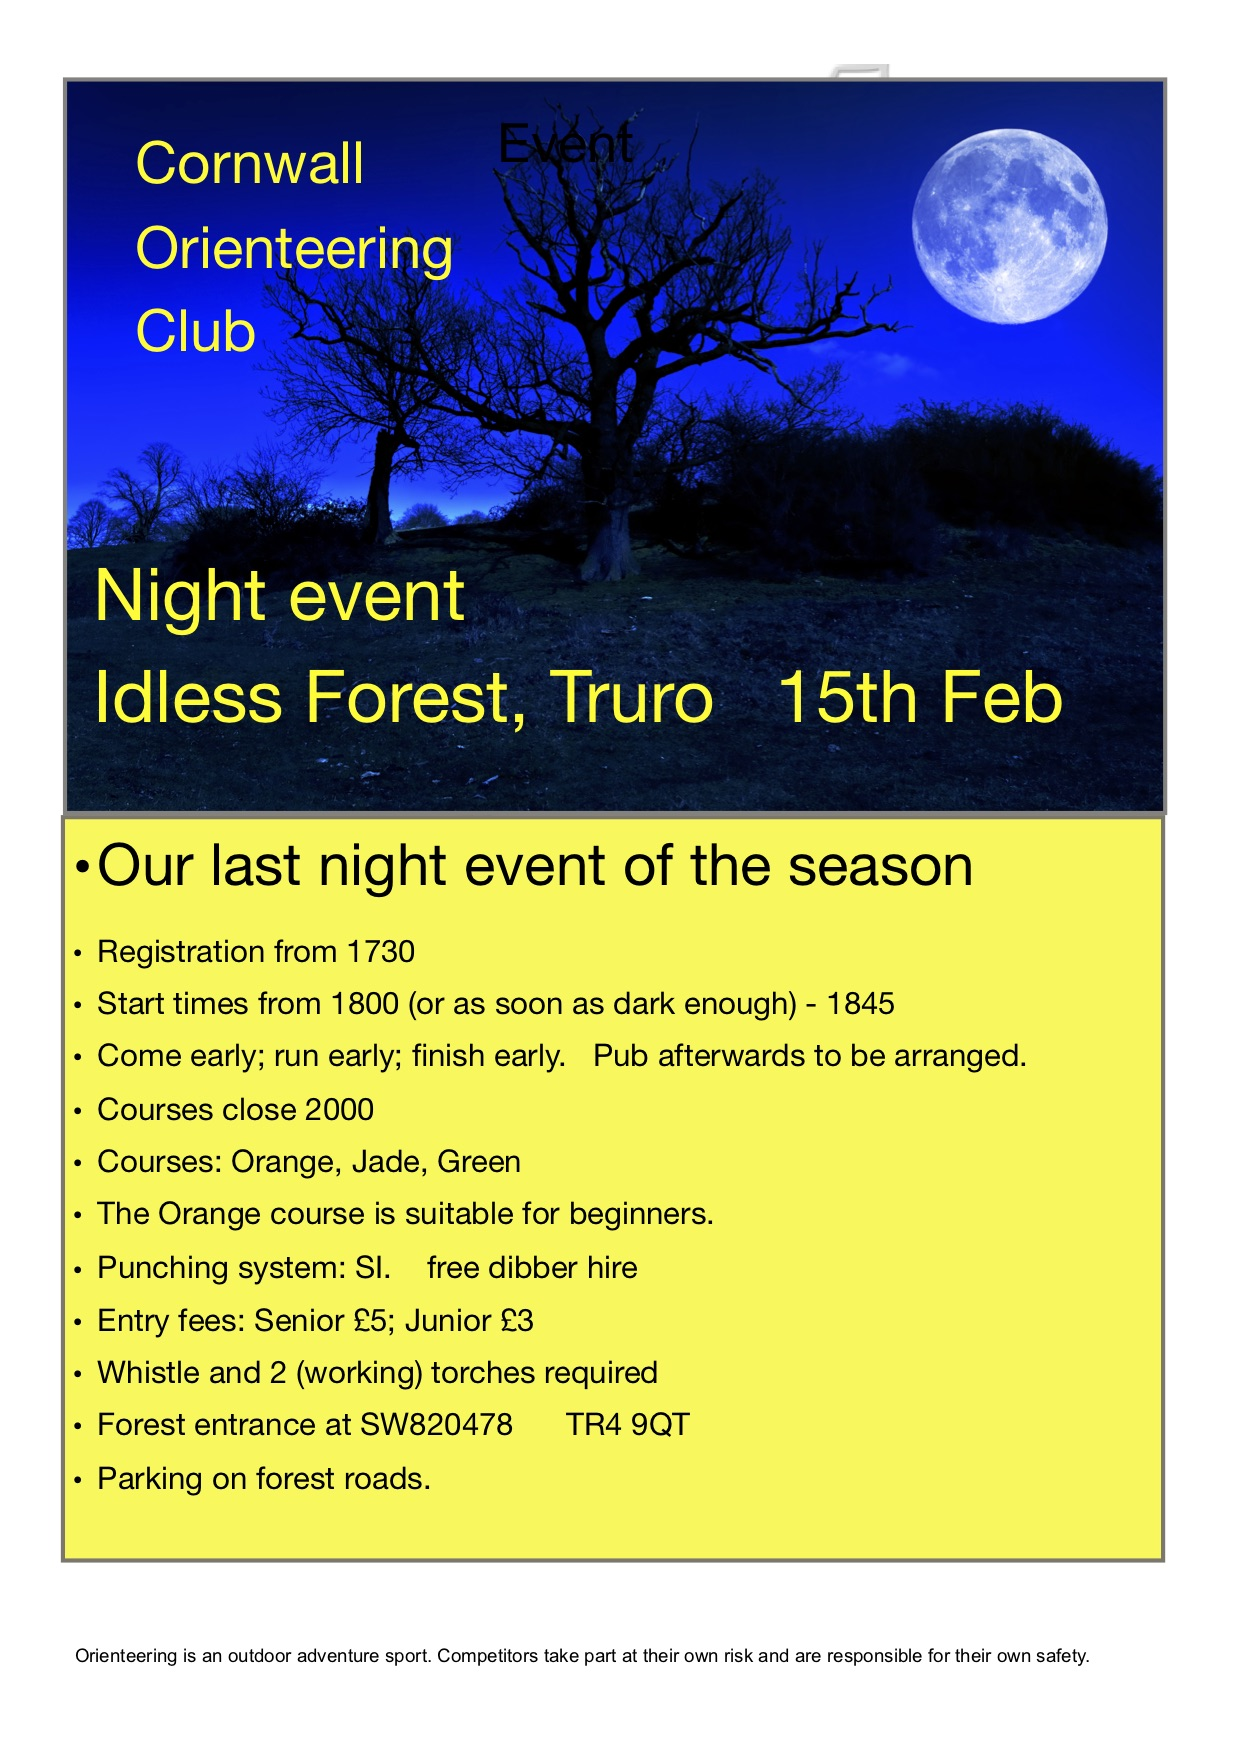 Idless night event flyer